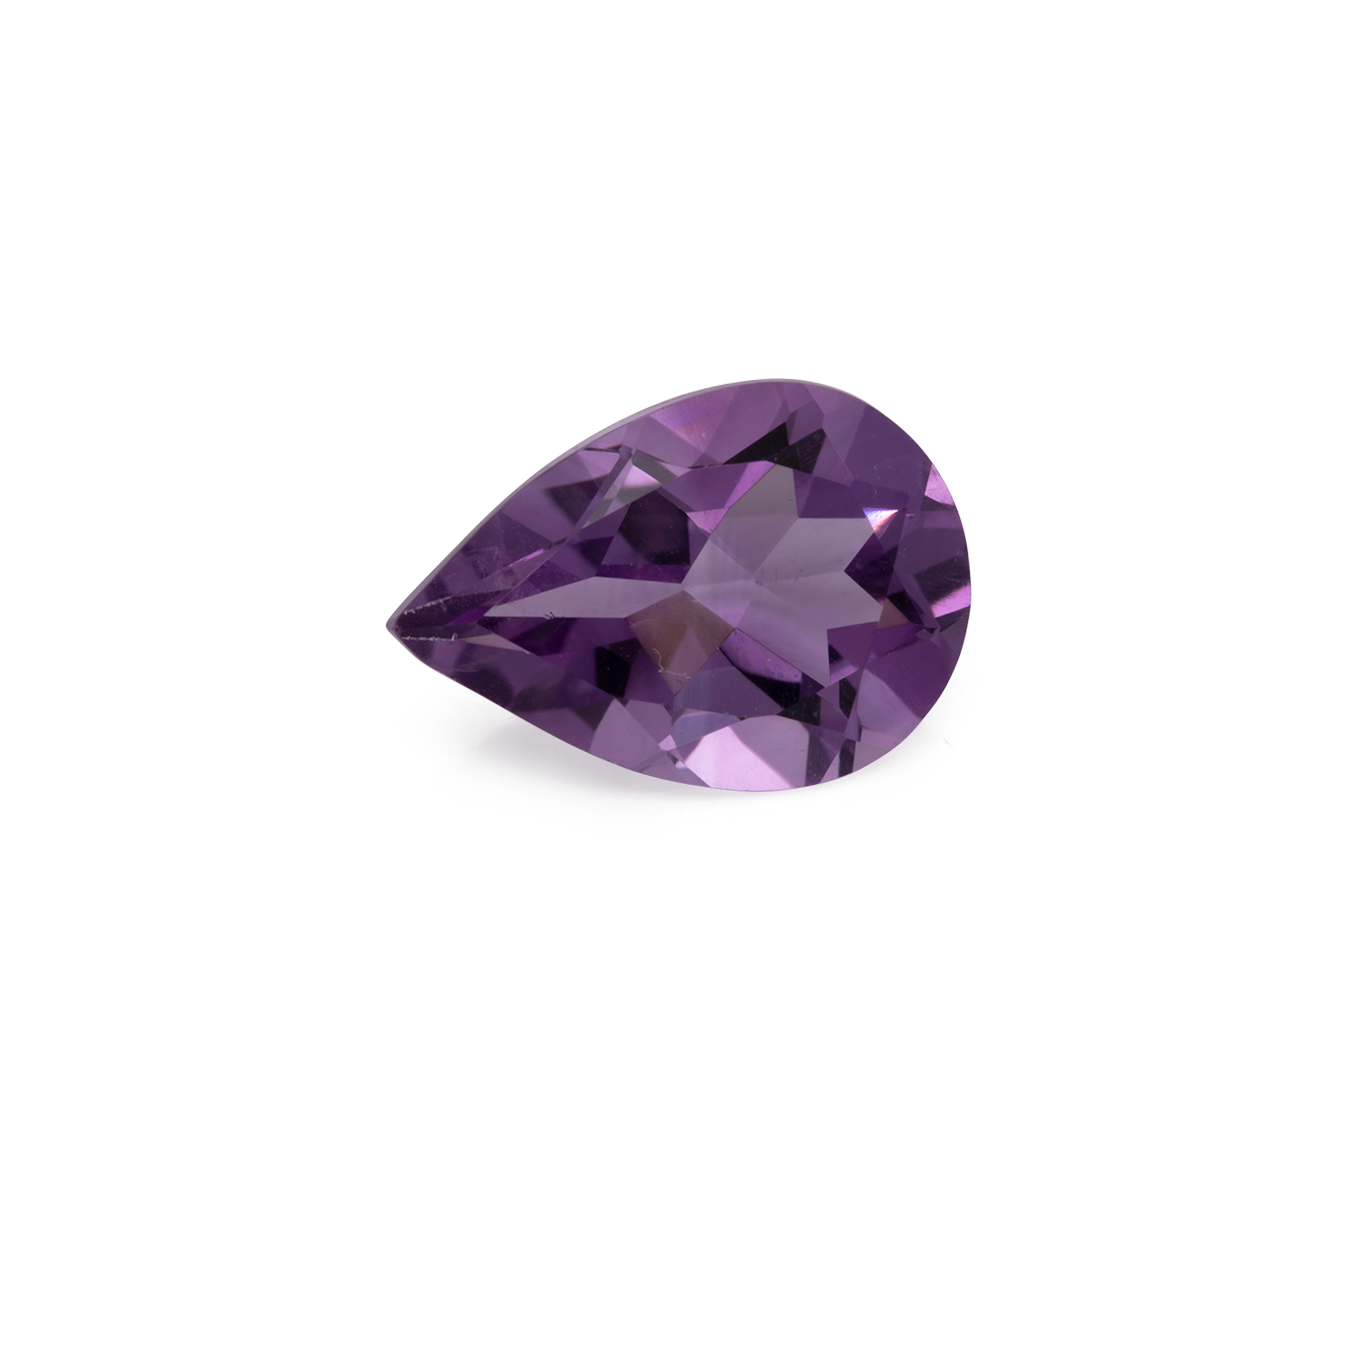 Amethyst - lila, birnform, 10x7 mm, 1,40-1,90 cts, Nr. AMY64001